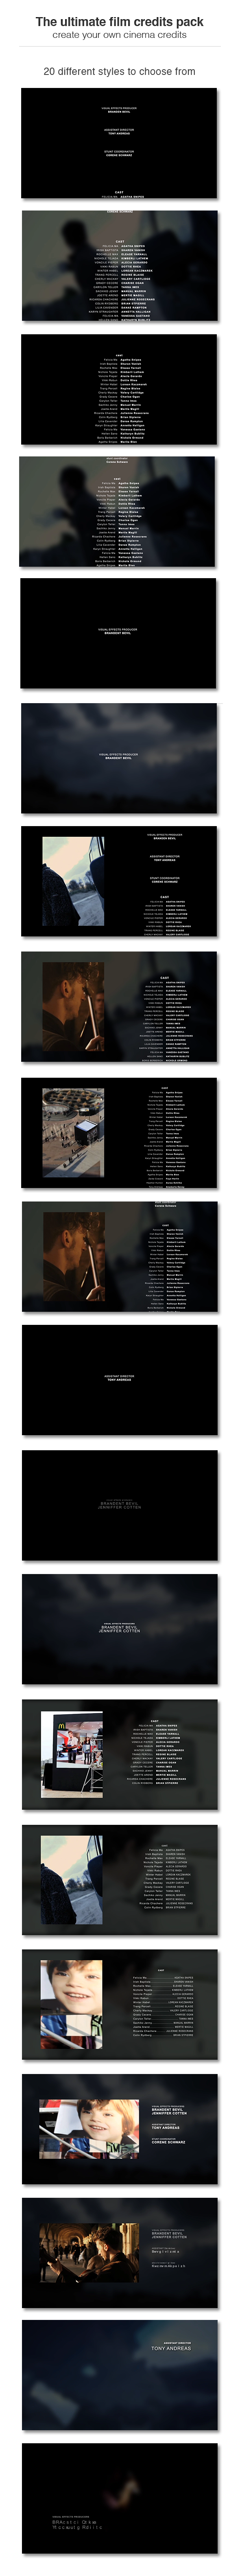 Nice Movie Poster Credits Template Motif